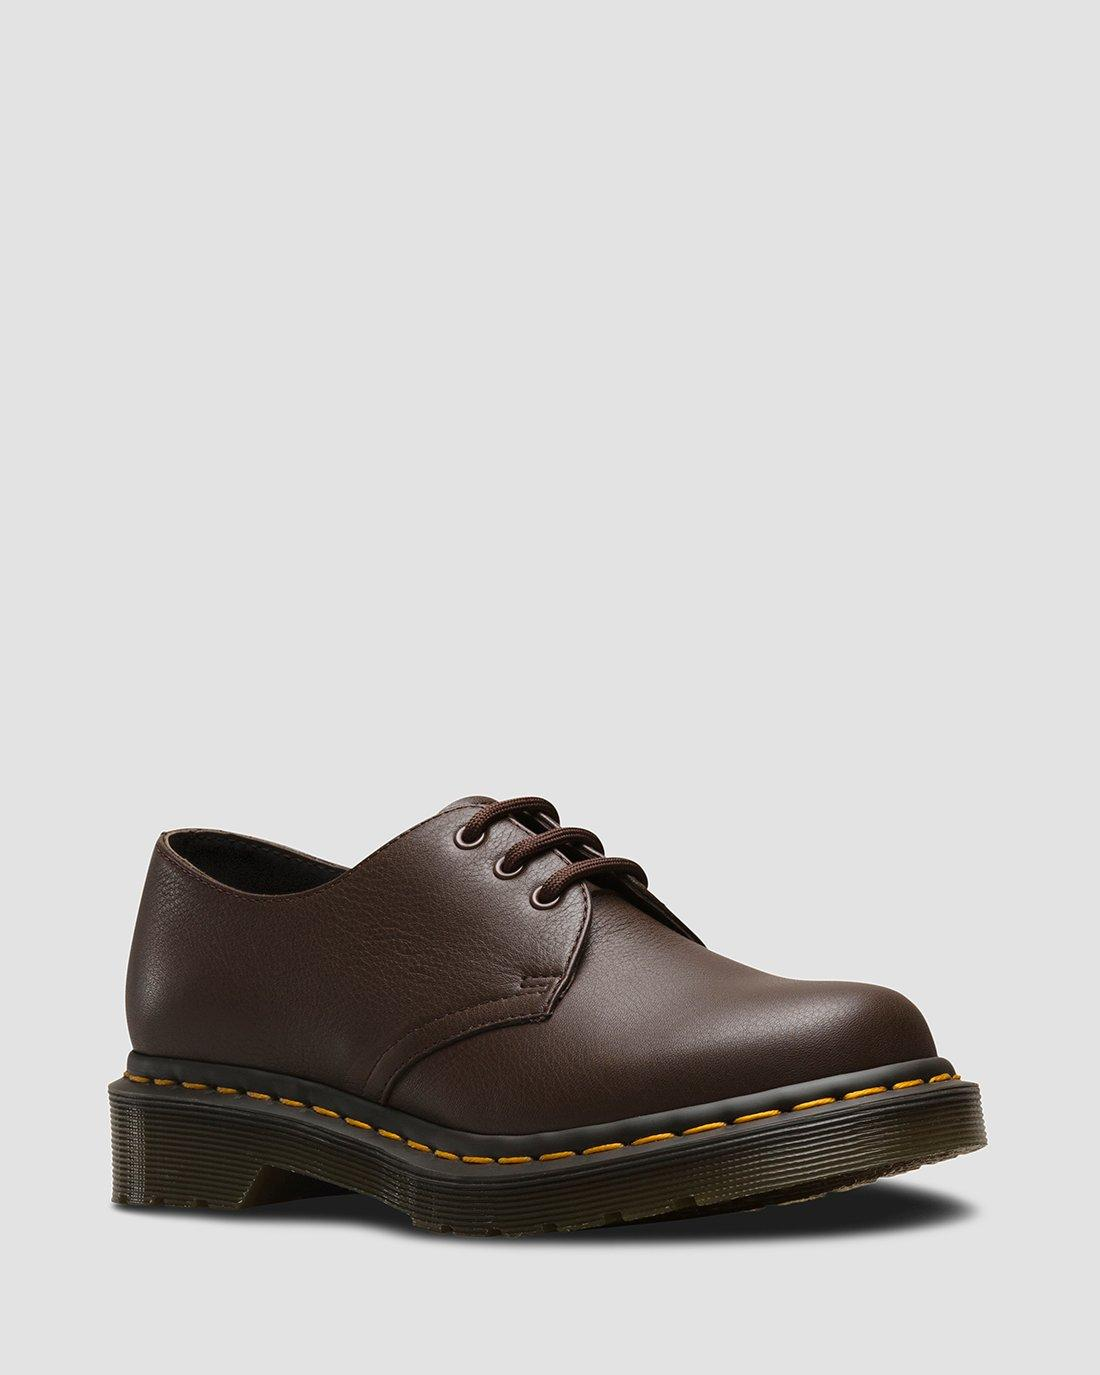 VIRGINIA LEATHER OXFORD SHOES | Dr. Martens